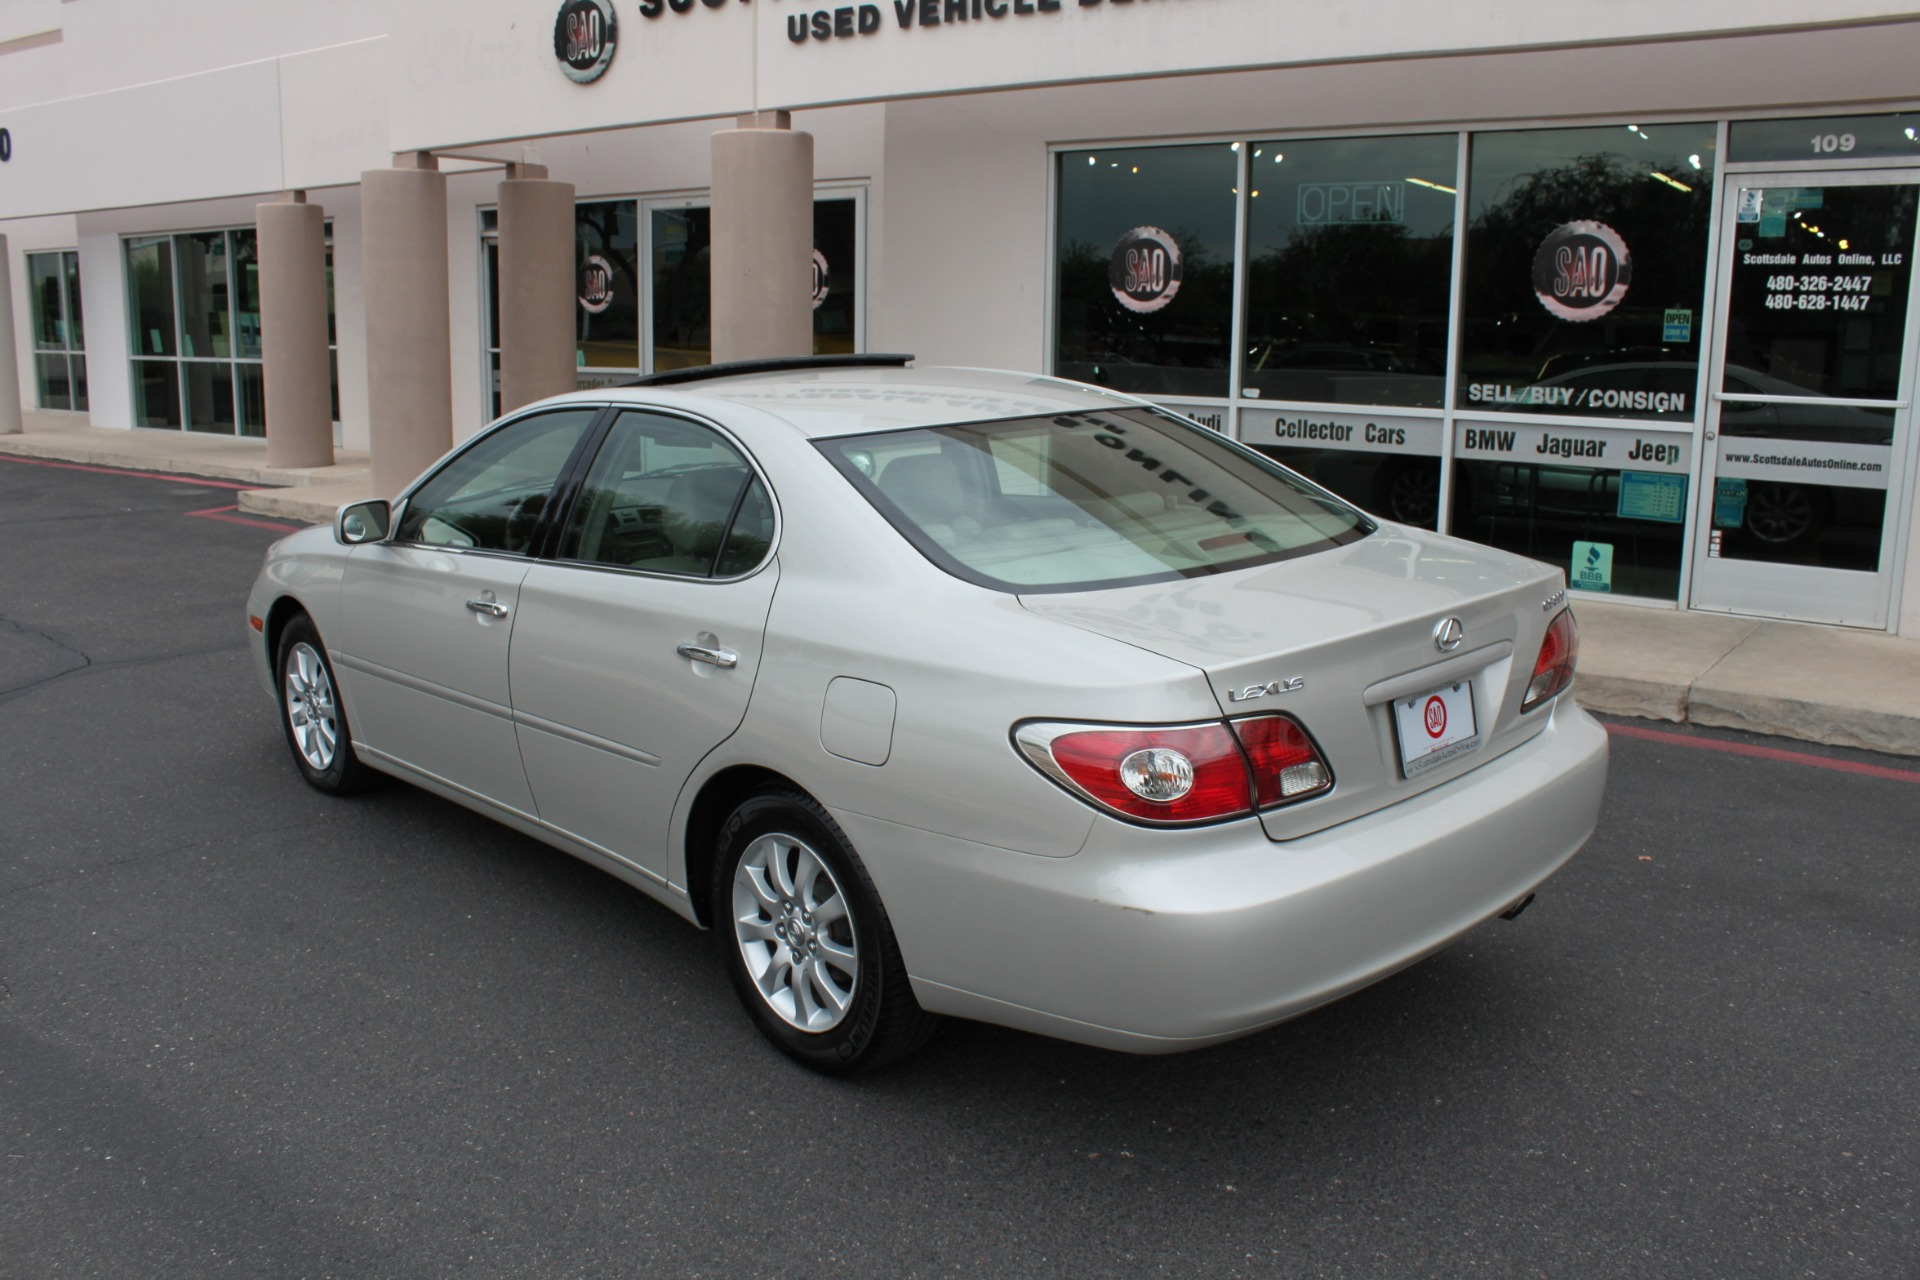 Used-2003-Lexus-ES-300-Land-Cruiser